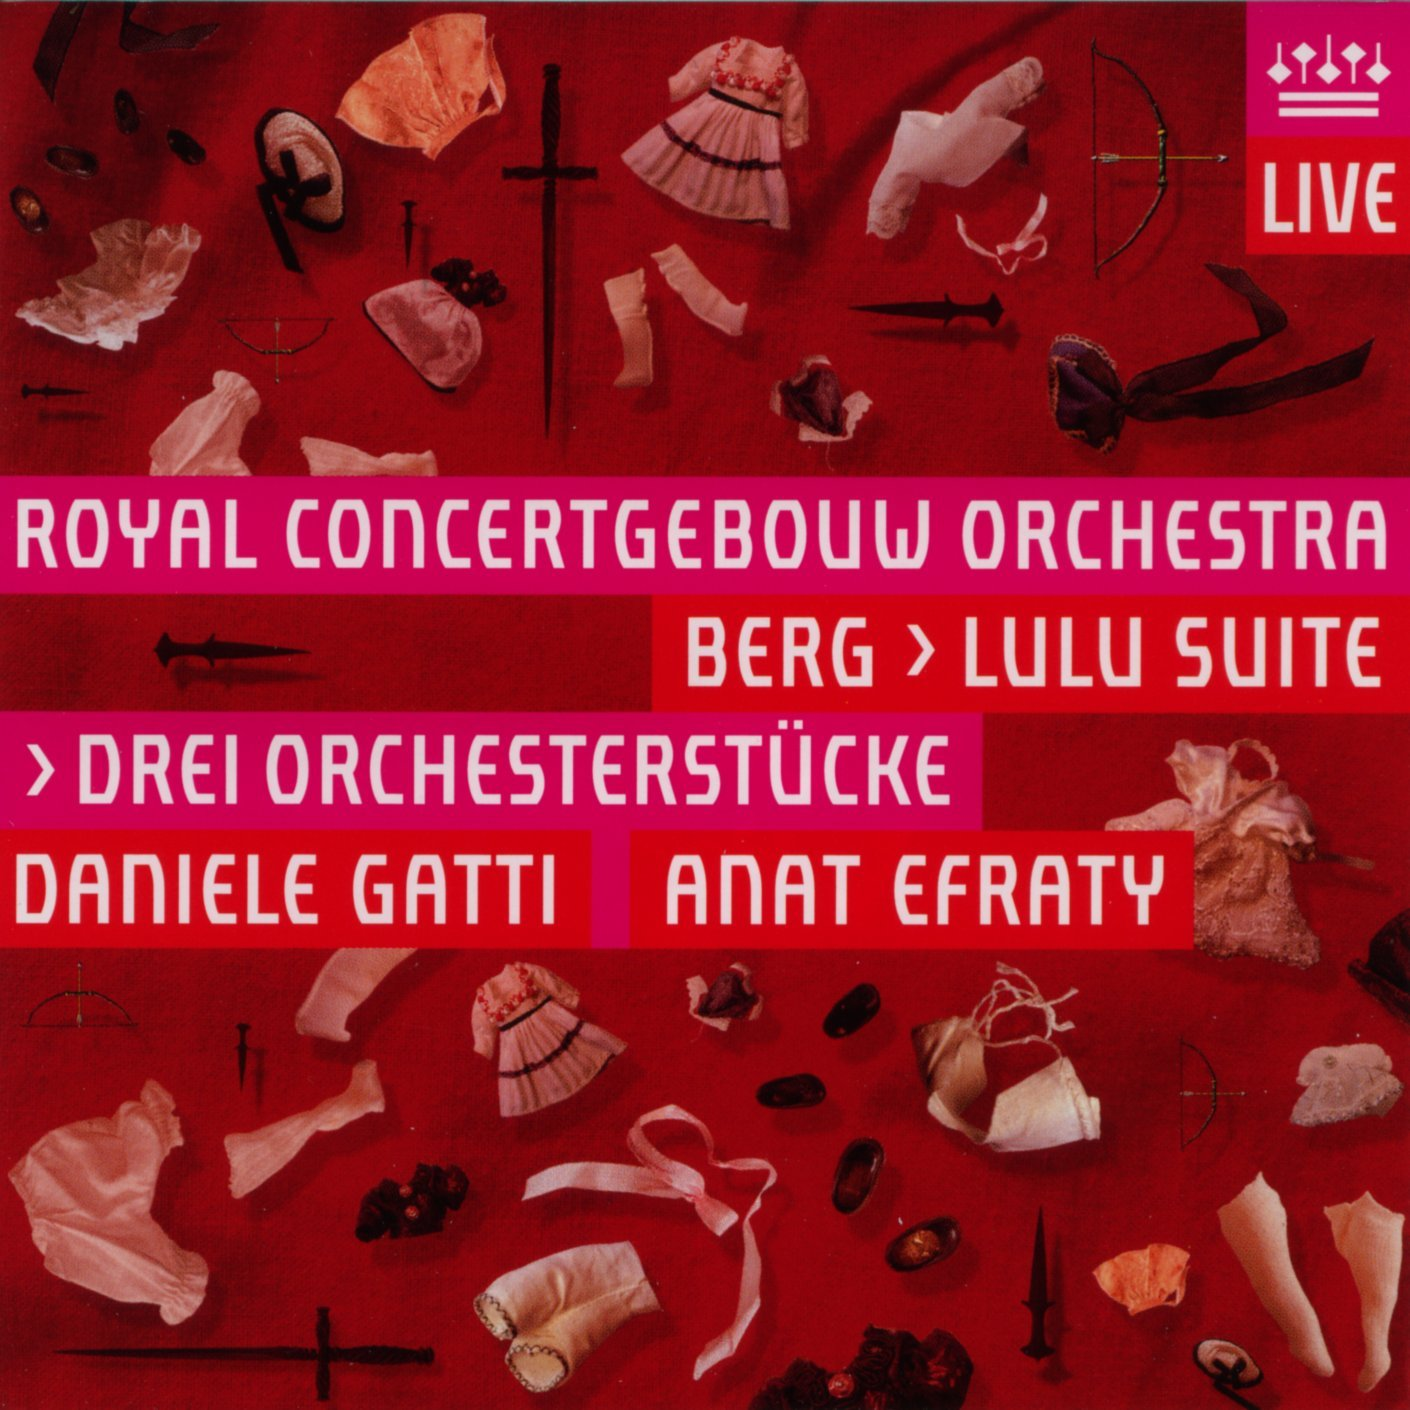 Berg: Lulu Suite / Drei Orchesterstücke (The Three Orchestral Pieces) by RCO